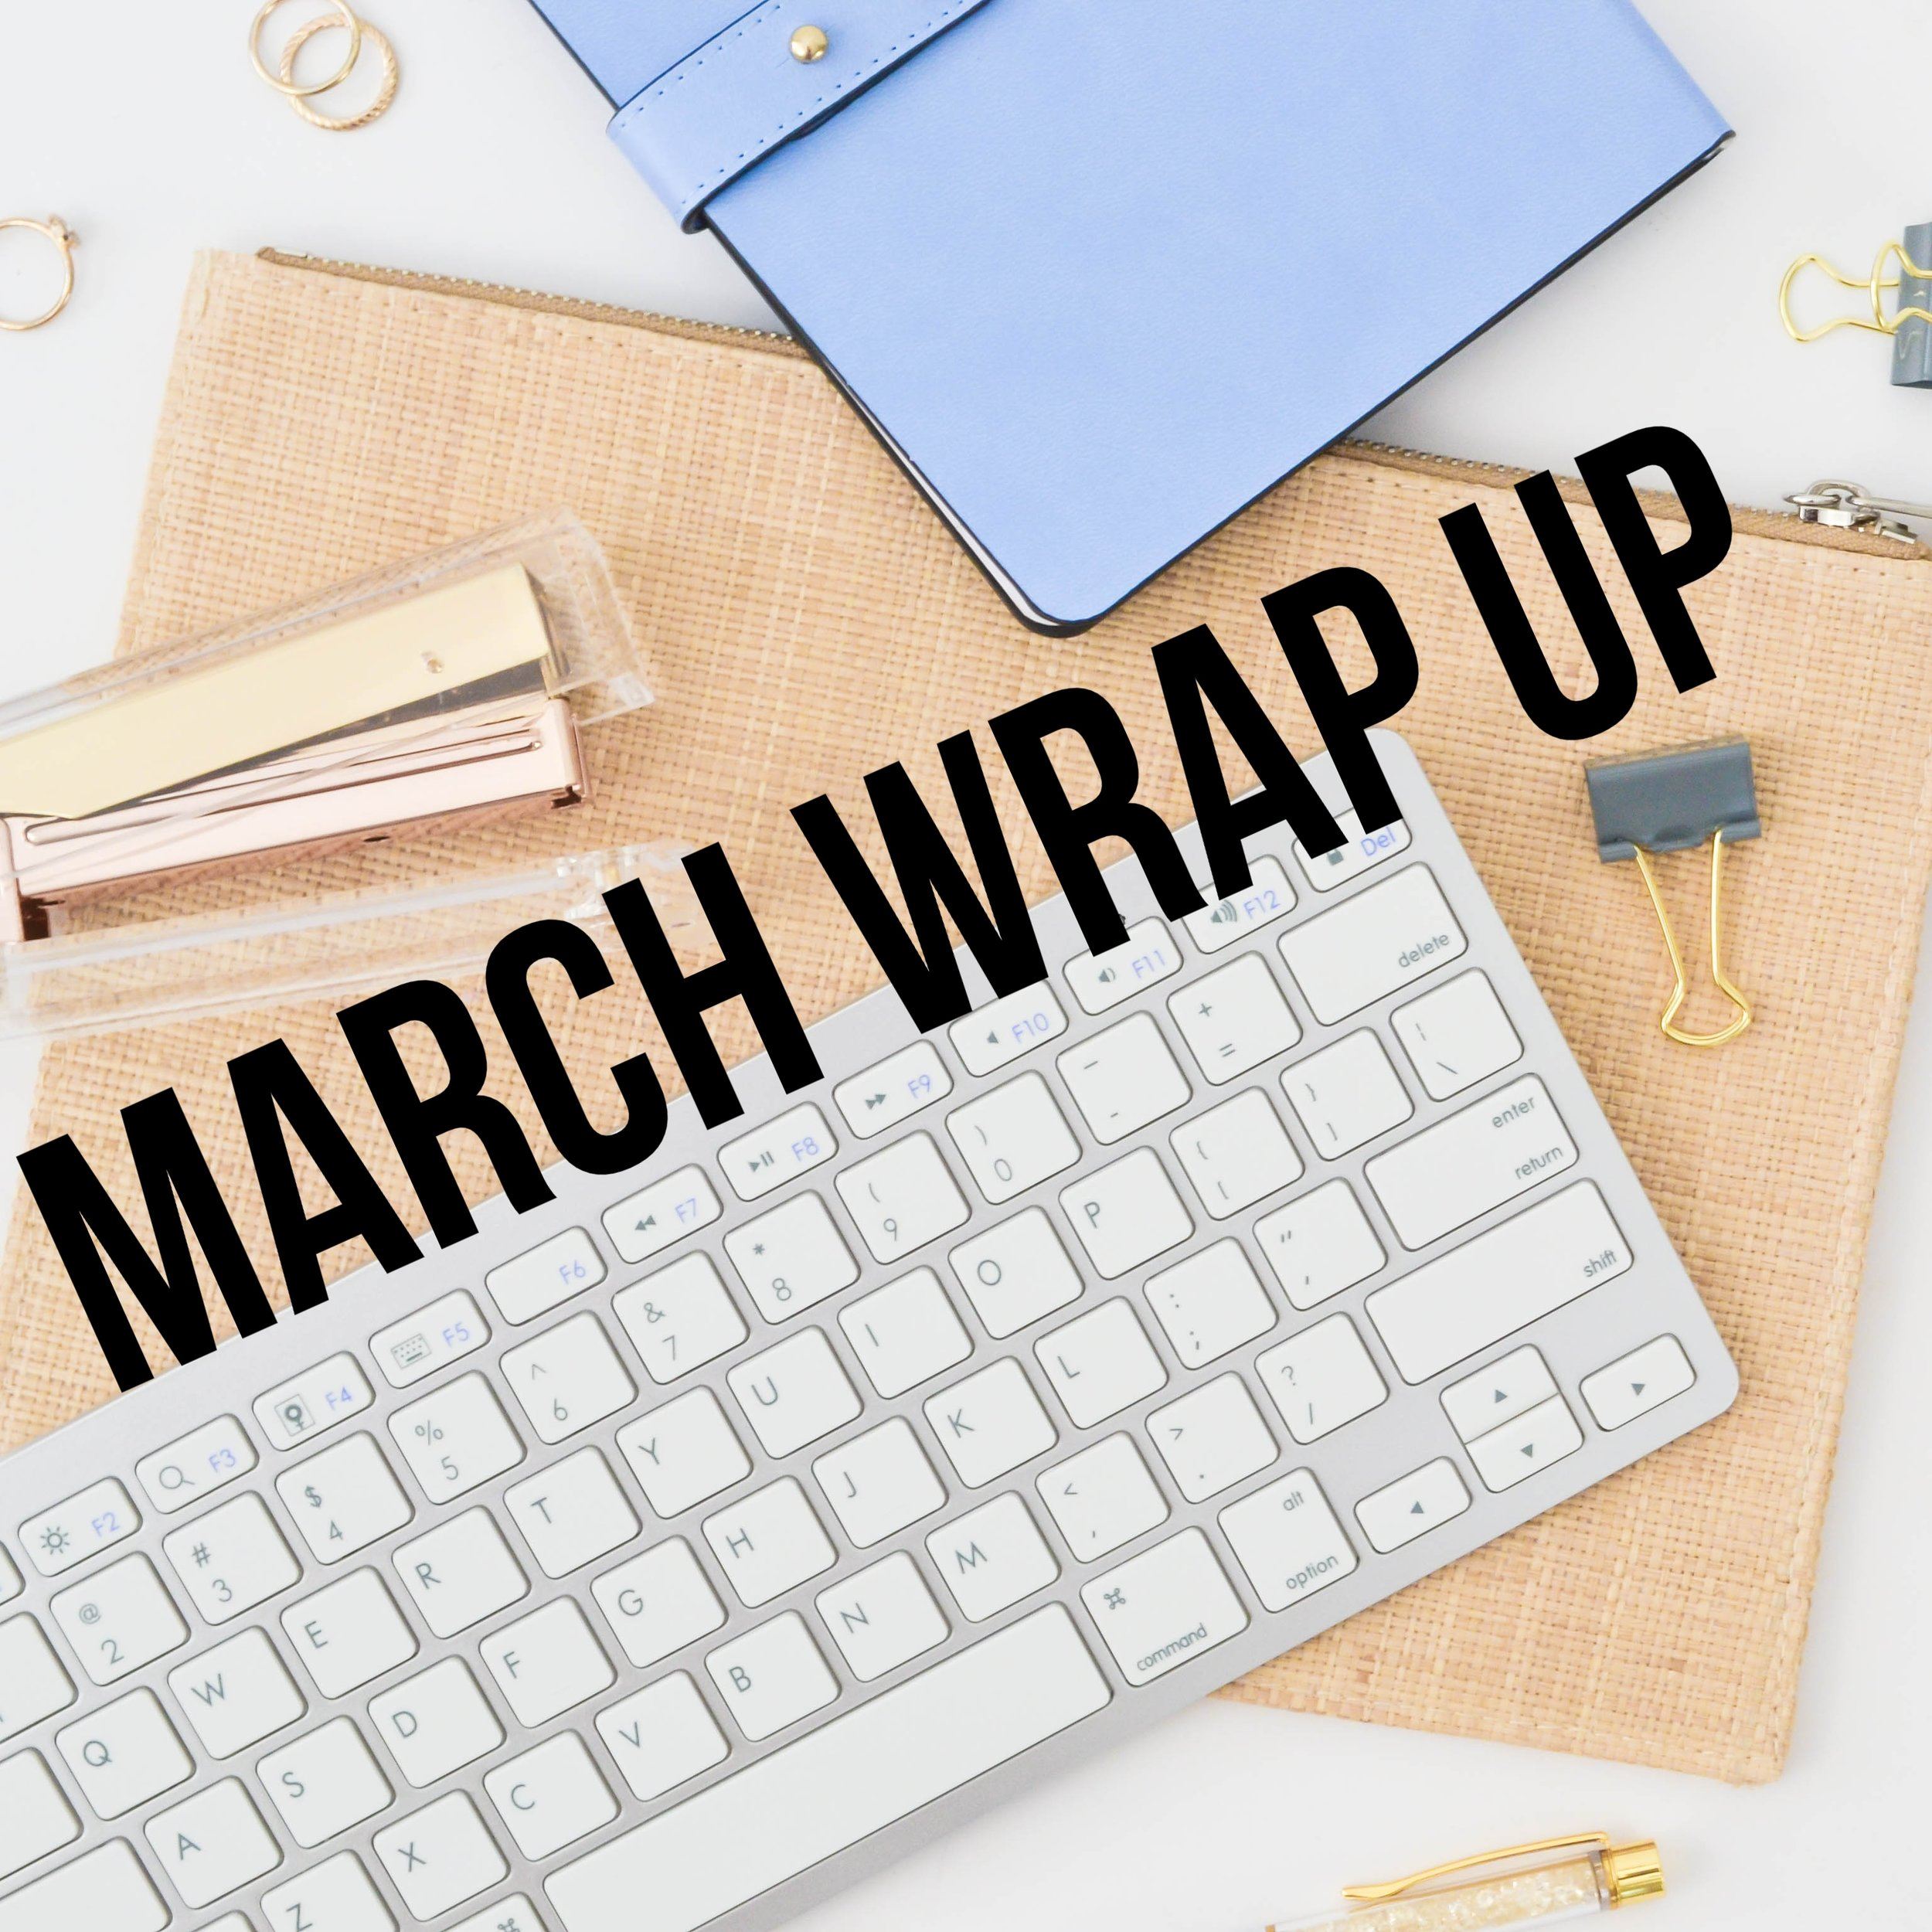 march wrap up.jpg